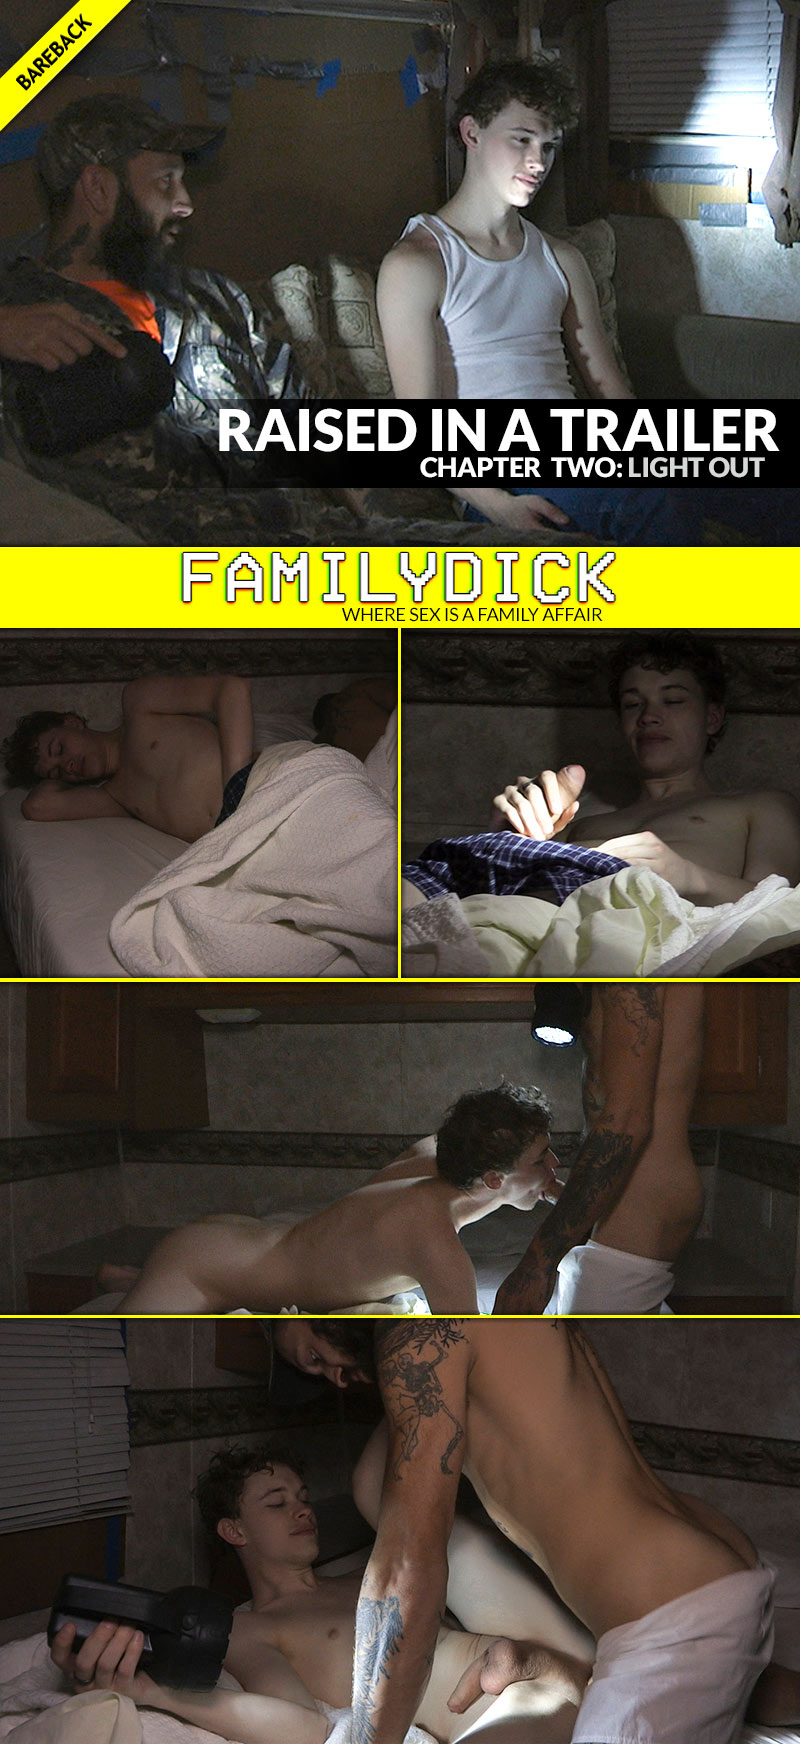 Raised In A Trailer, Chapter 3: LIGHTS OUT (with Matt Muck and Toby Muck) at FamilyDick